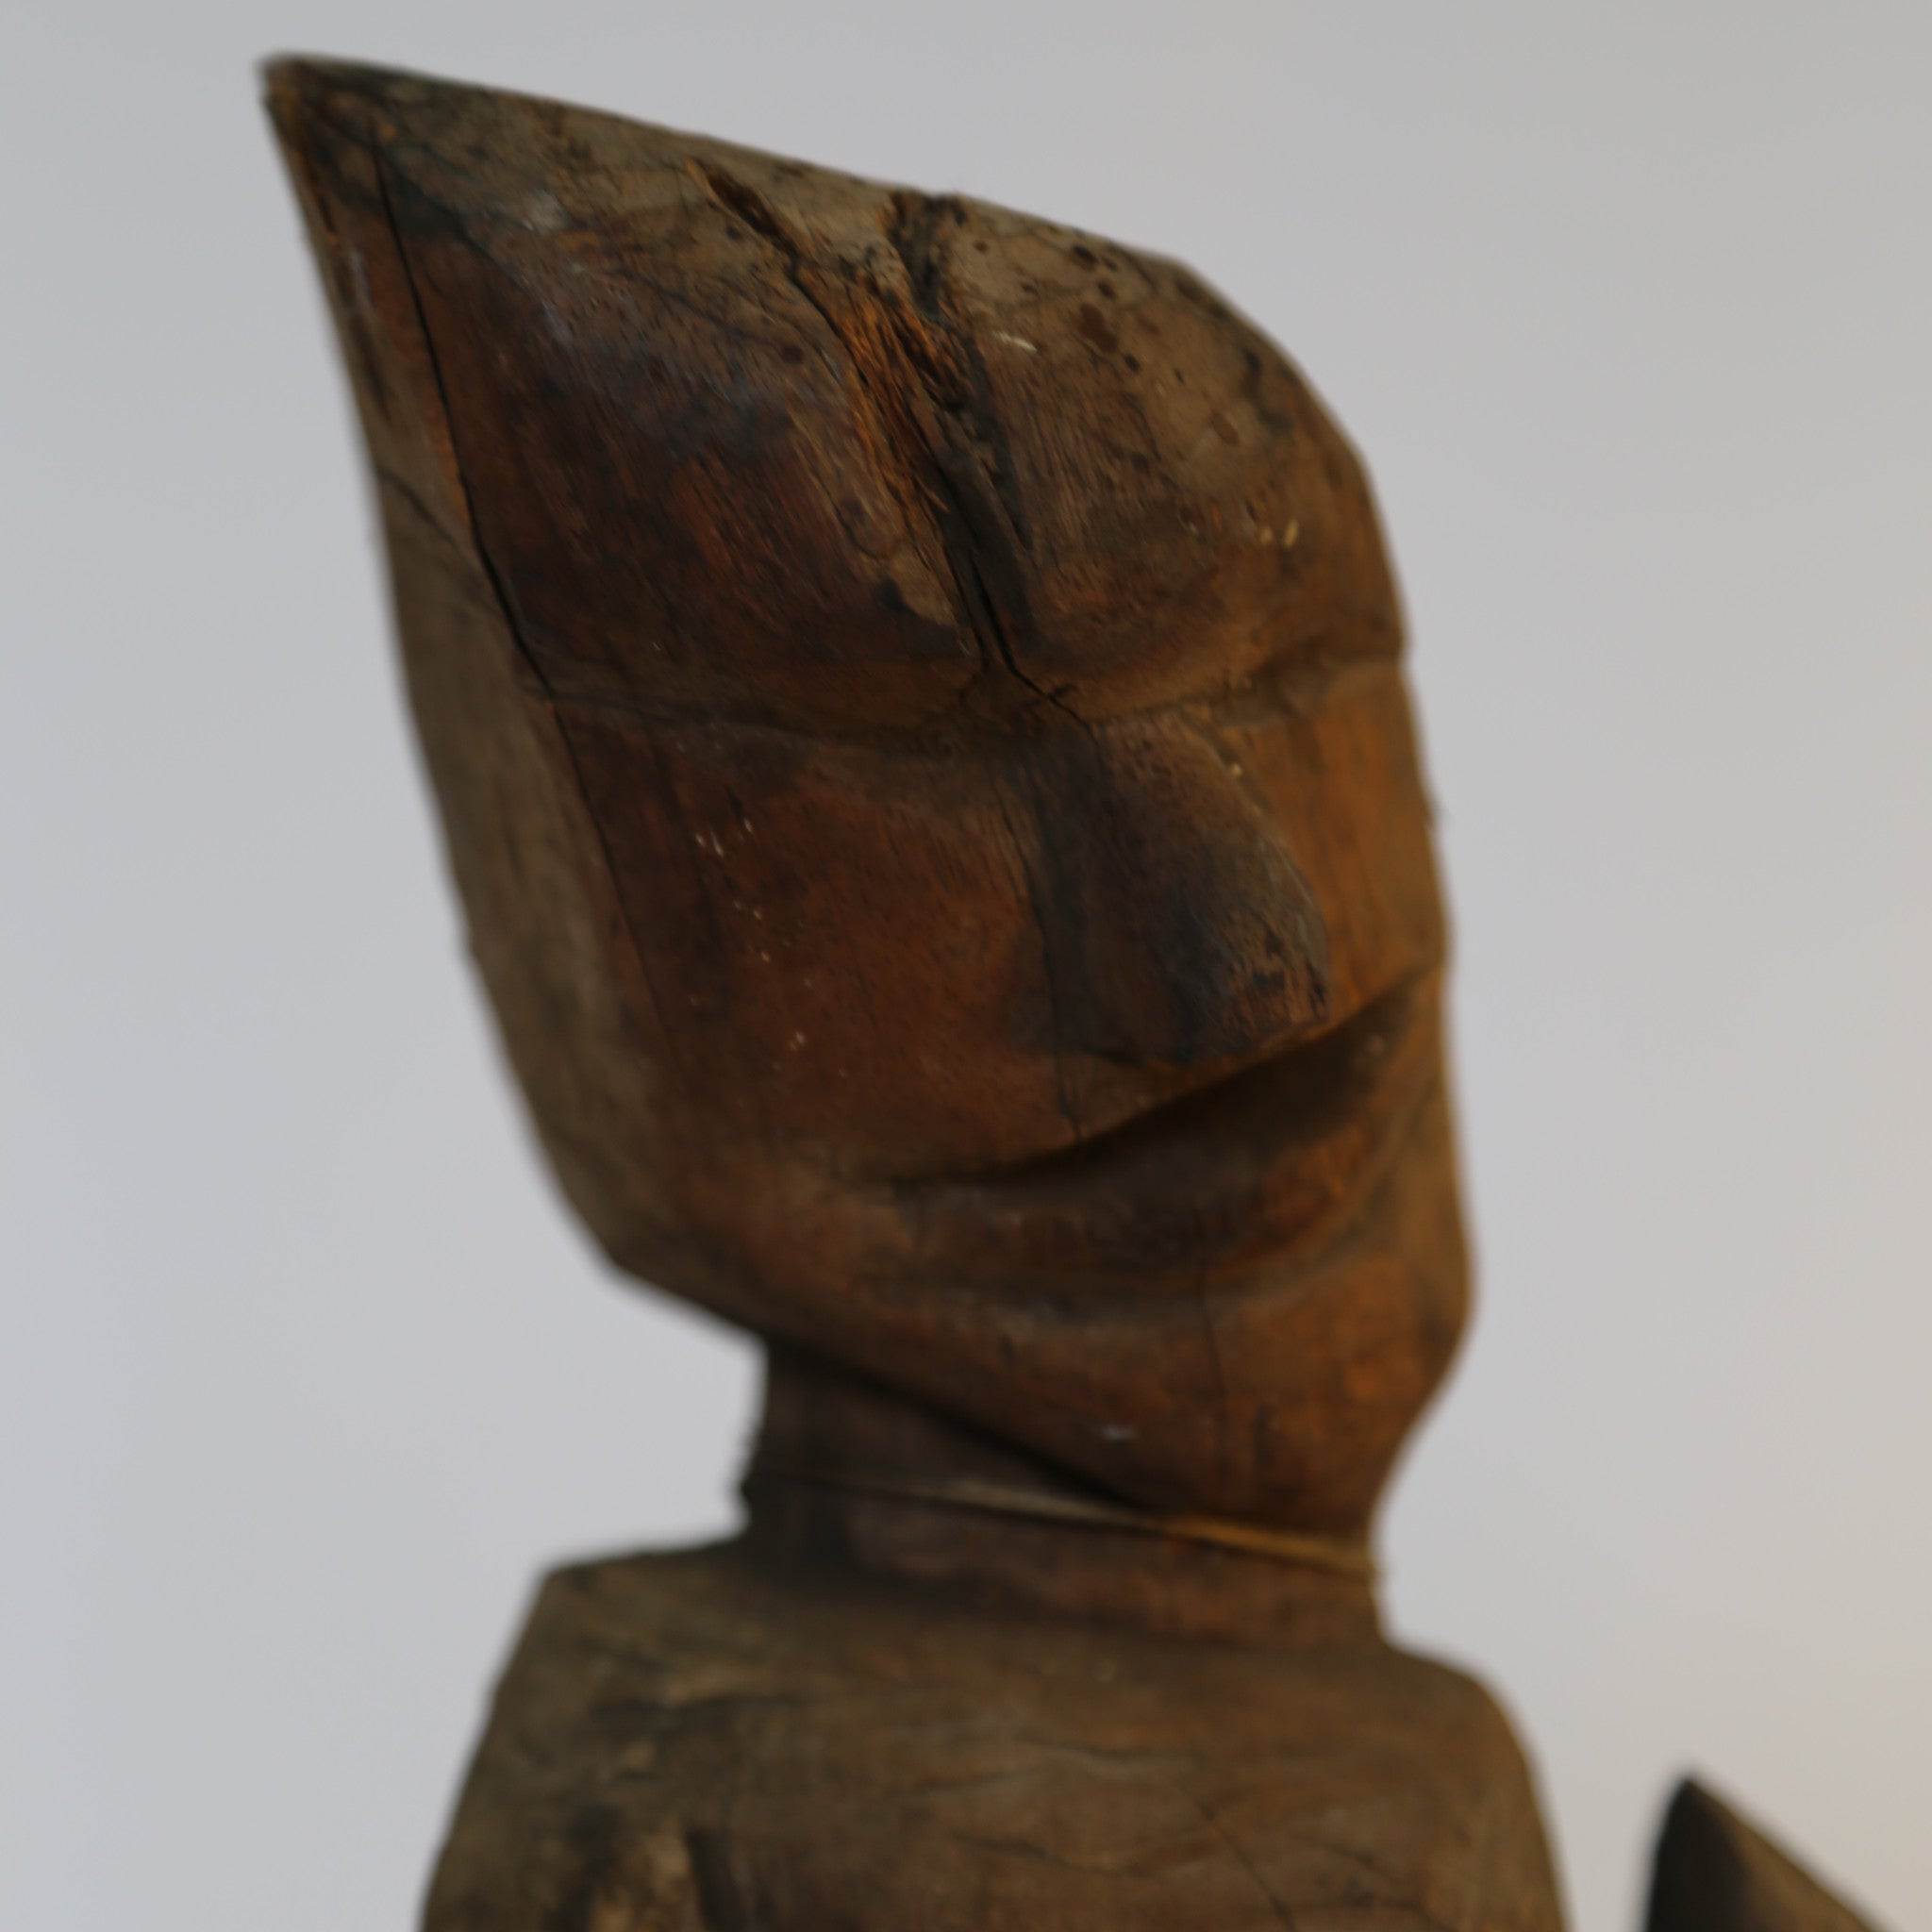 Indonesian Pointy Head Man - Wood Sculpture